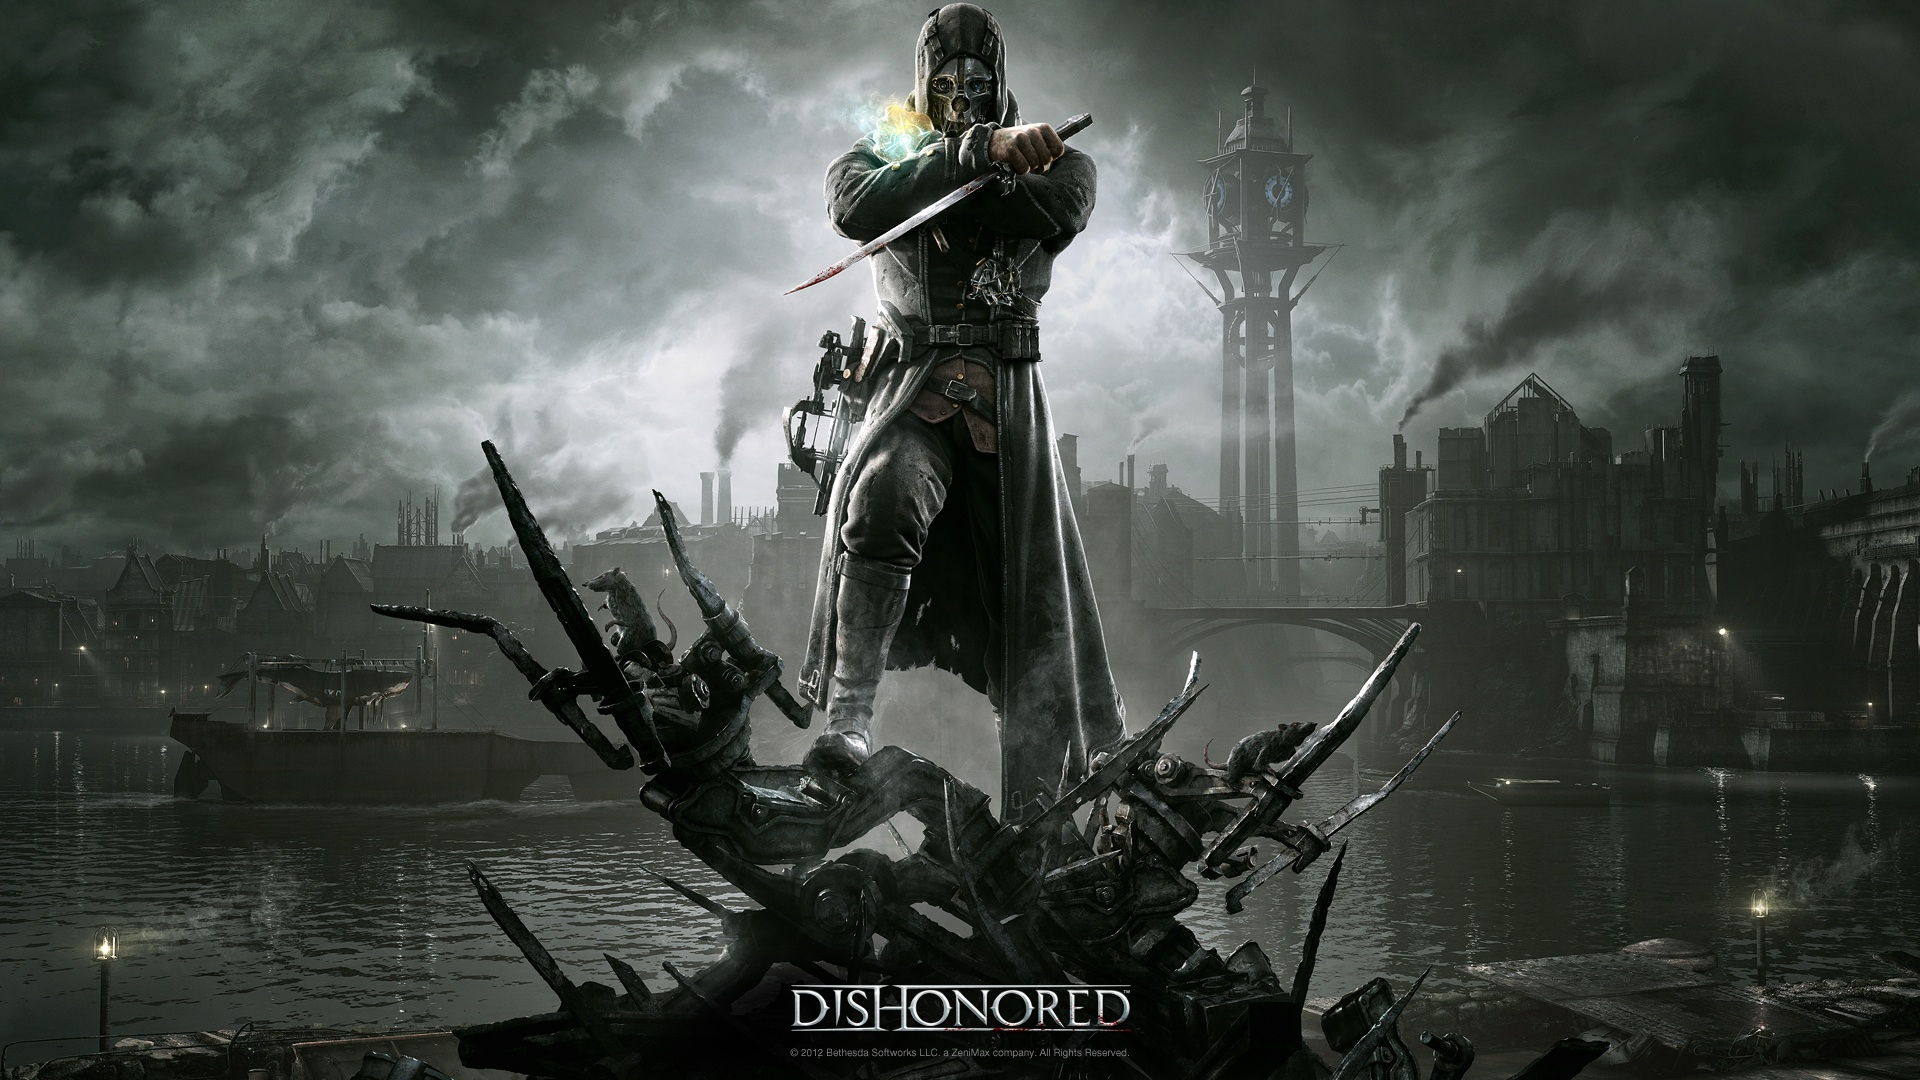 The other game mentioned is Dishonored: Definitive Edition. We can pretty safely make the assumption this will be the new gens remaster of Dishonored ...